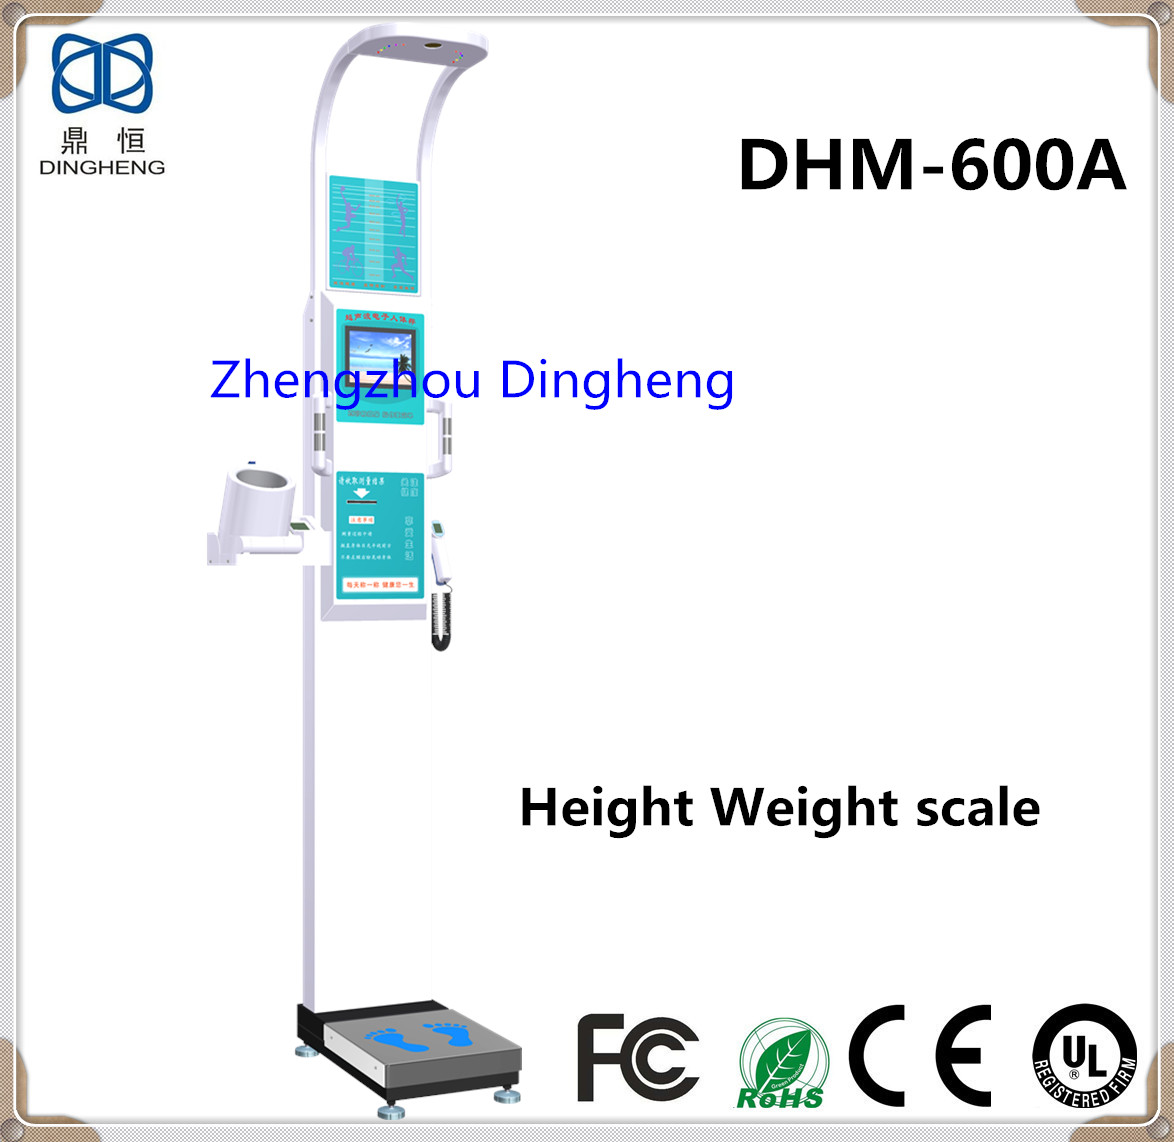 DHM-600A Multi-function ultrasonic weight and height scale with touch LCD screen